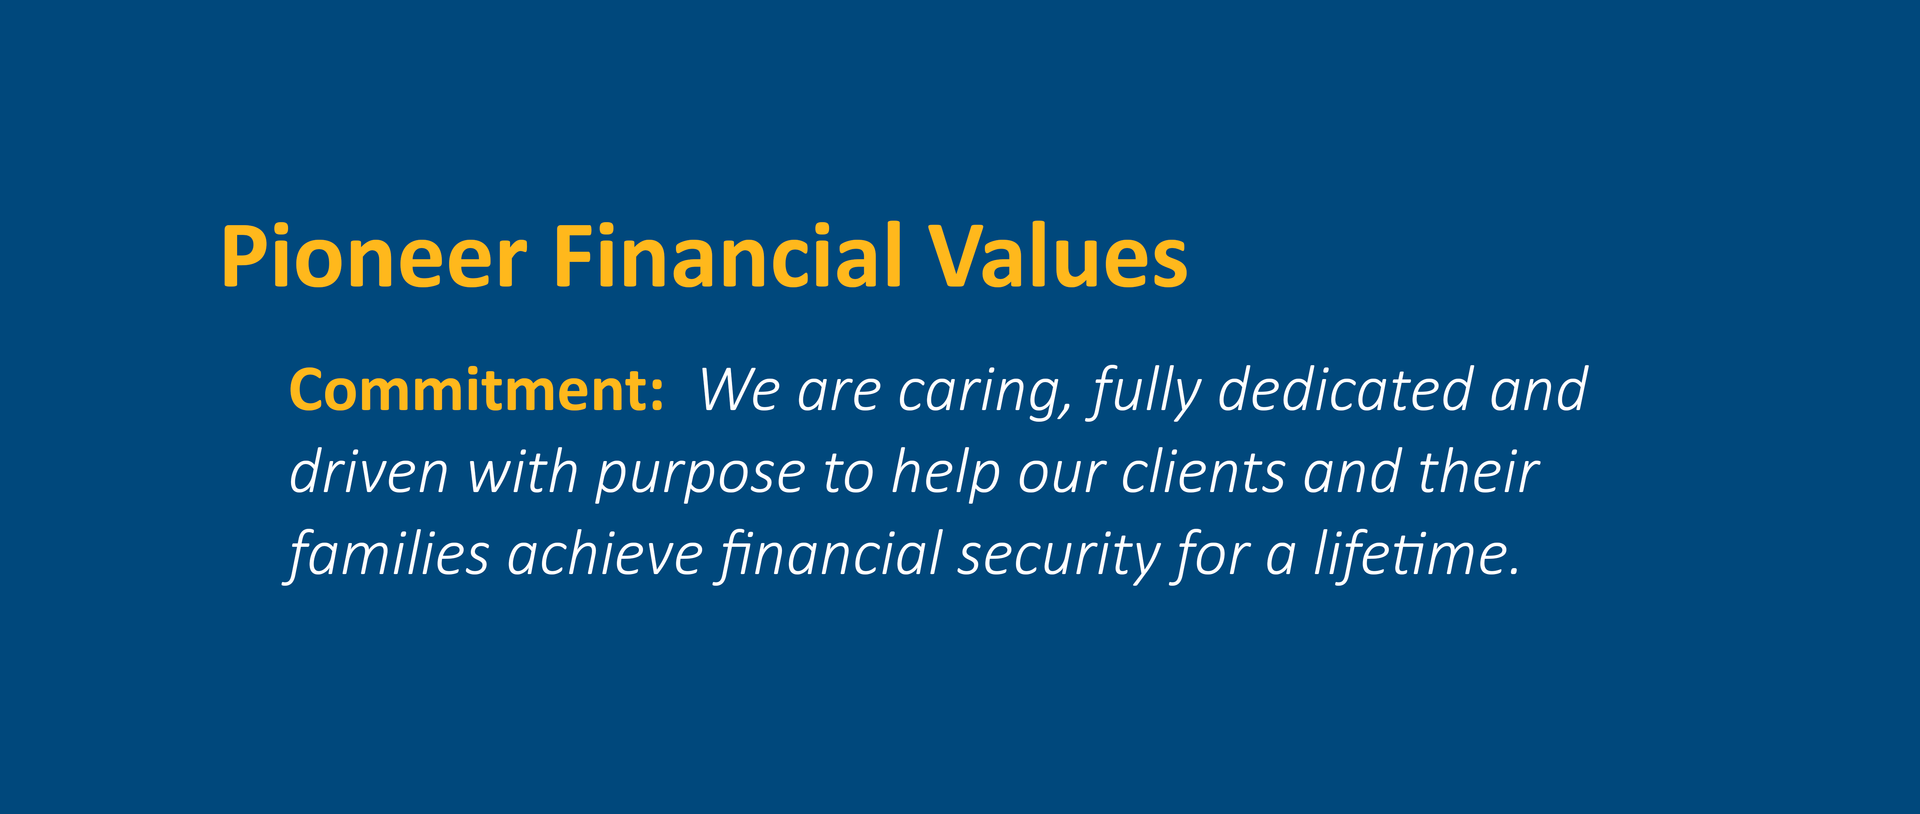 Commitment:  We are caring, fully dedicated and driven with purpose to help our clients and their families achieve financial security for a lifetime.